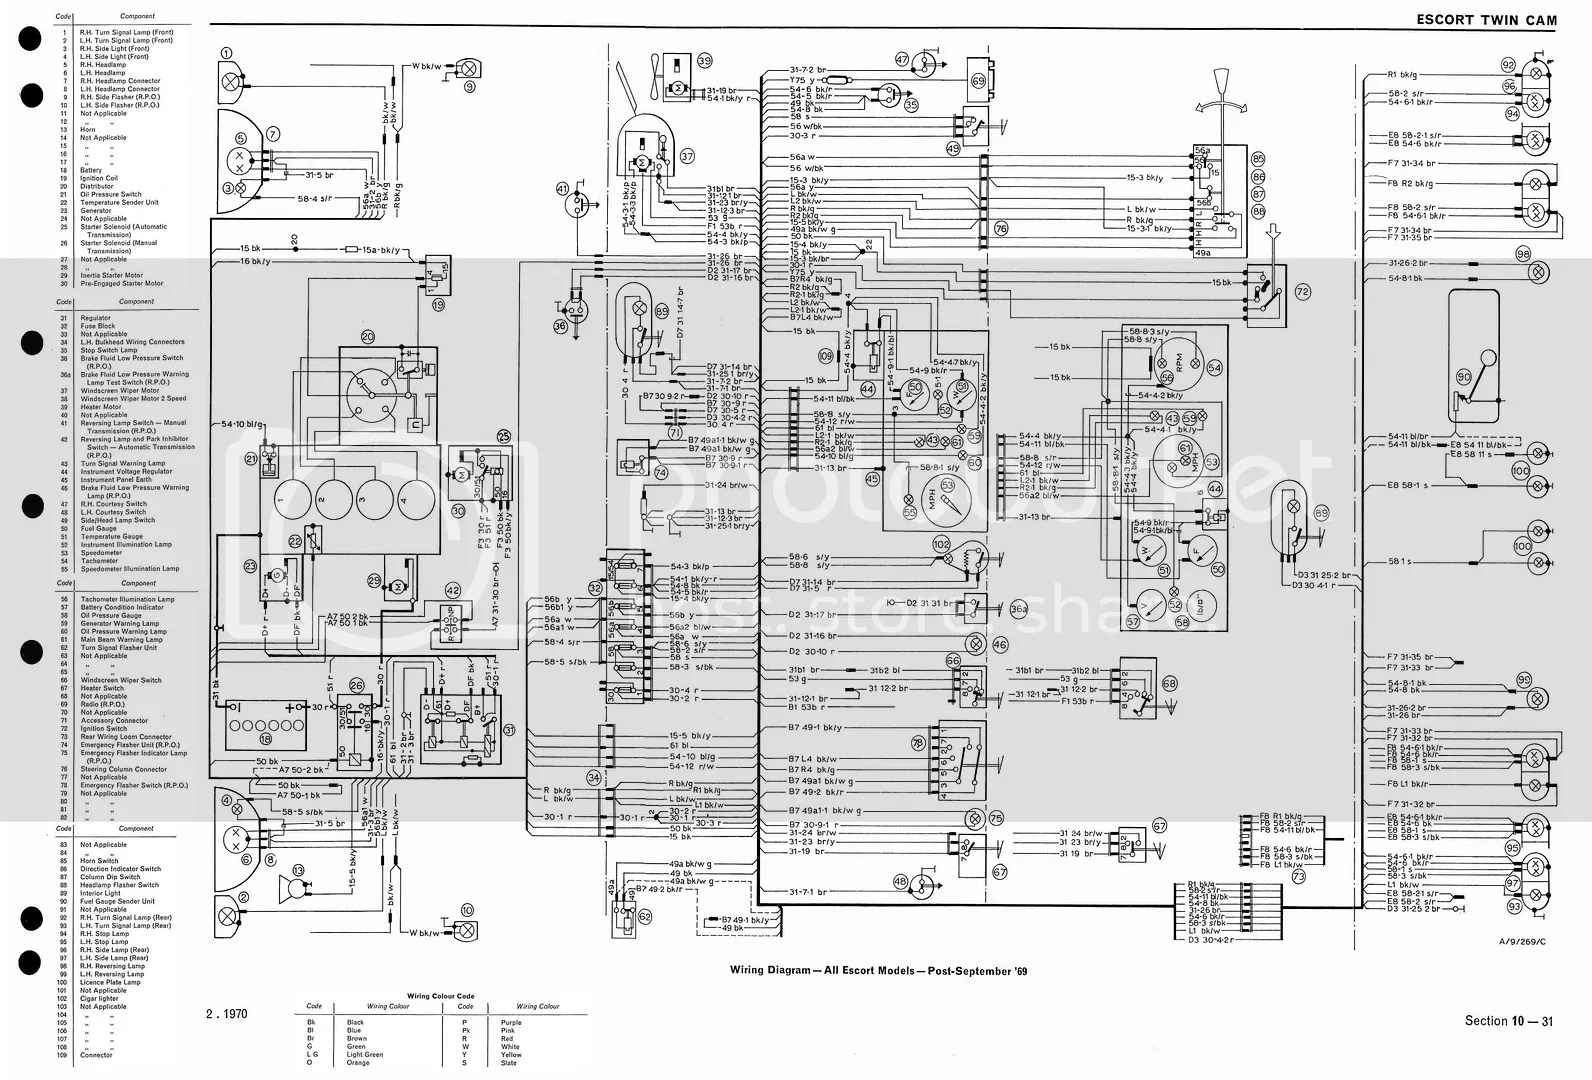 hight resolution of re wiring diagram for mk1 escort needed